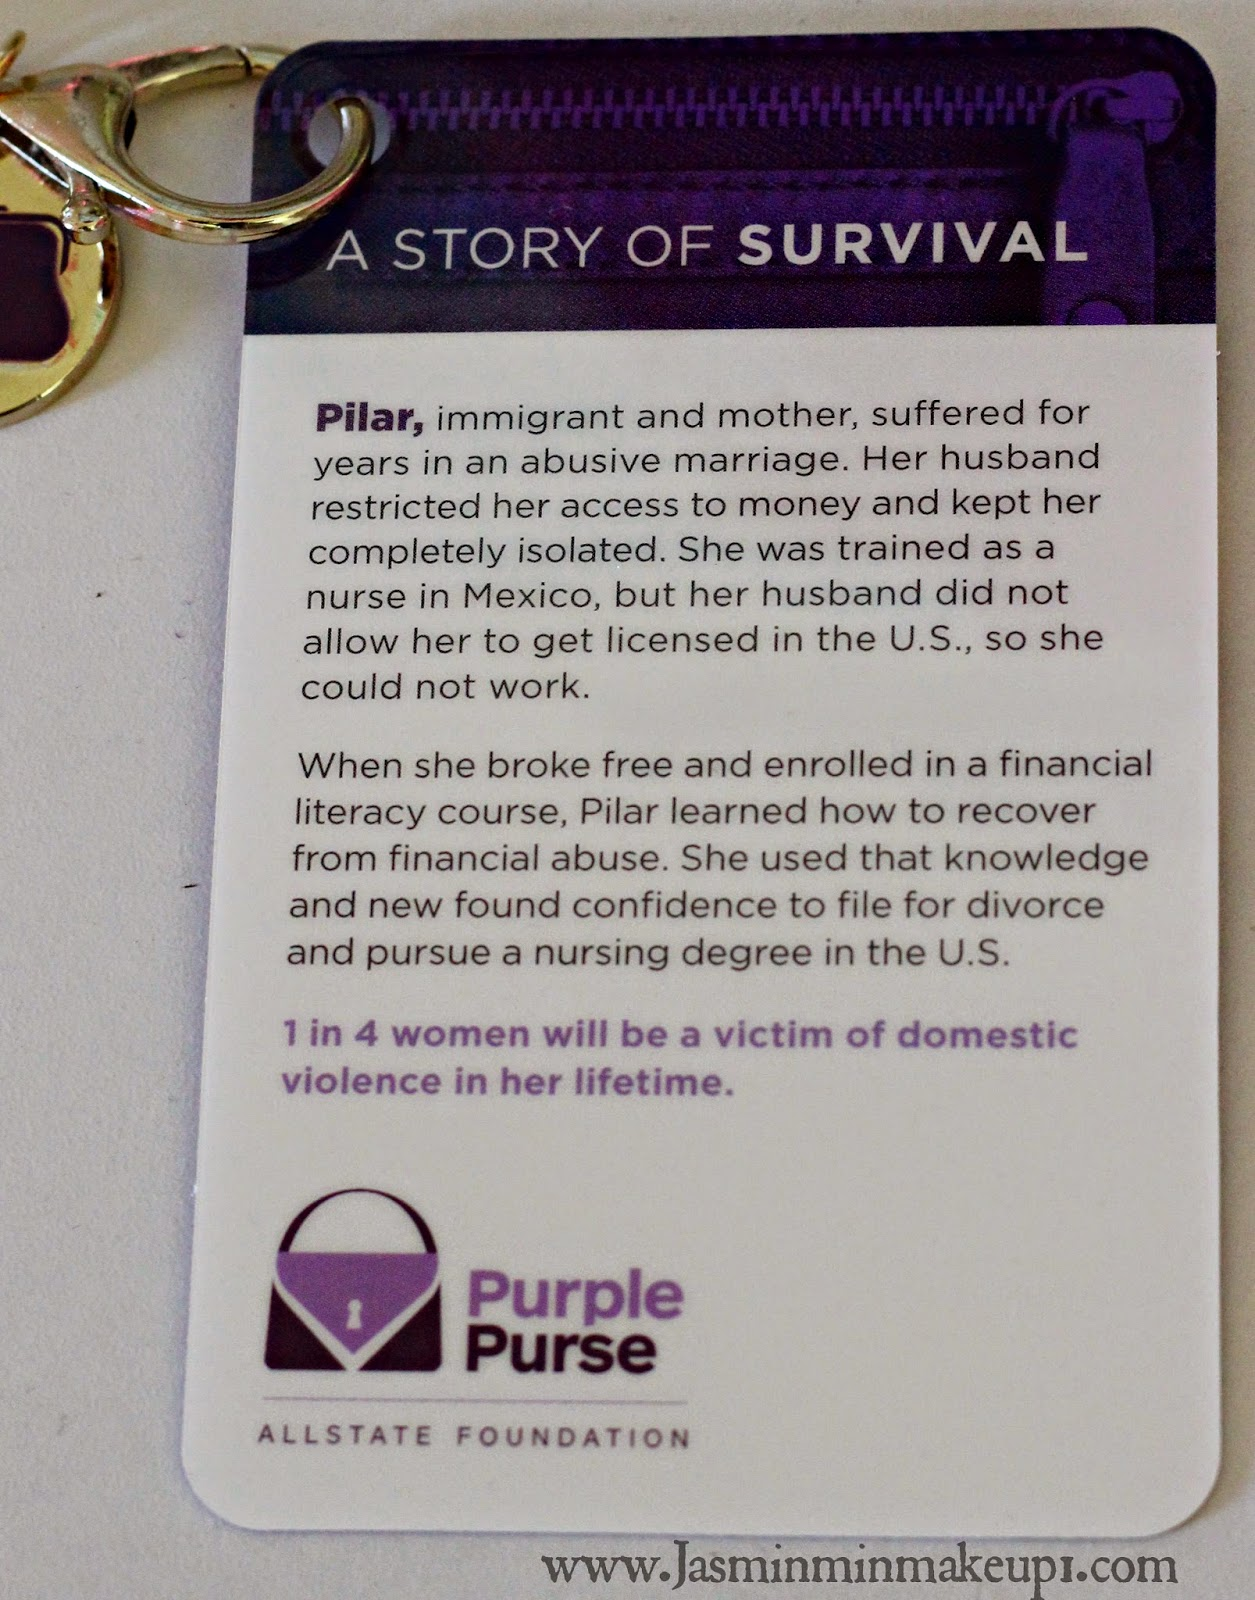 #purplepurse allstate